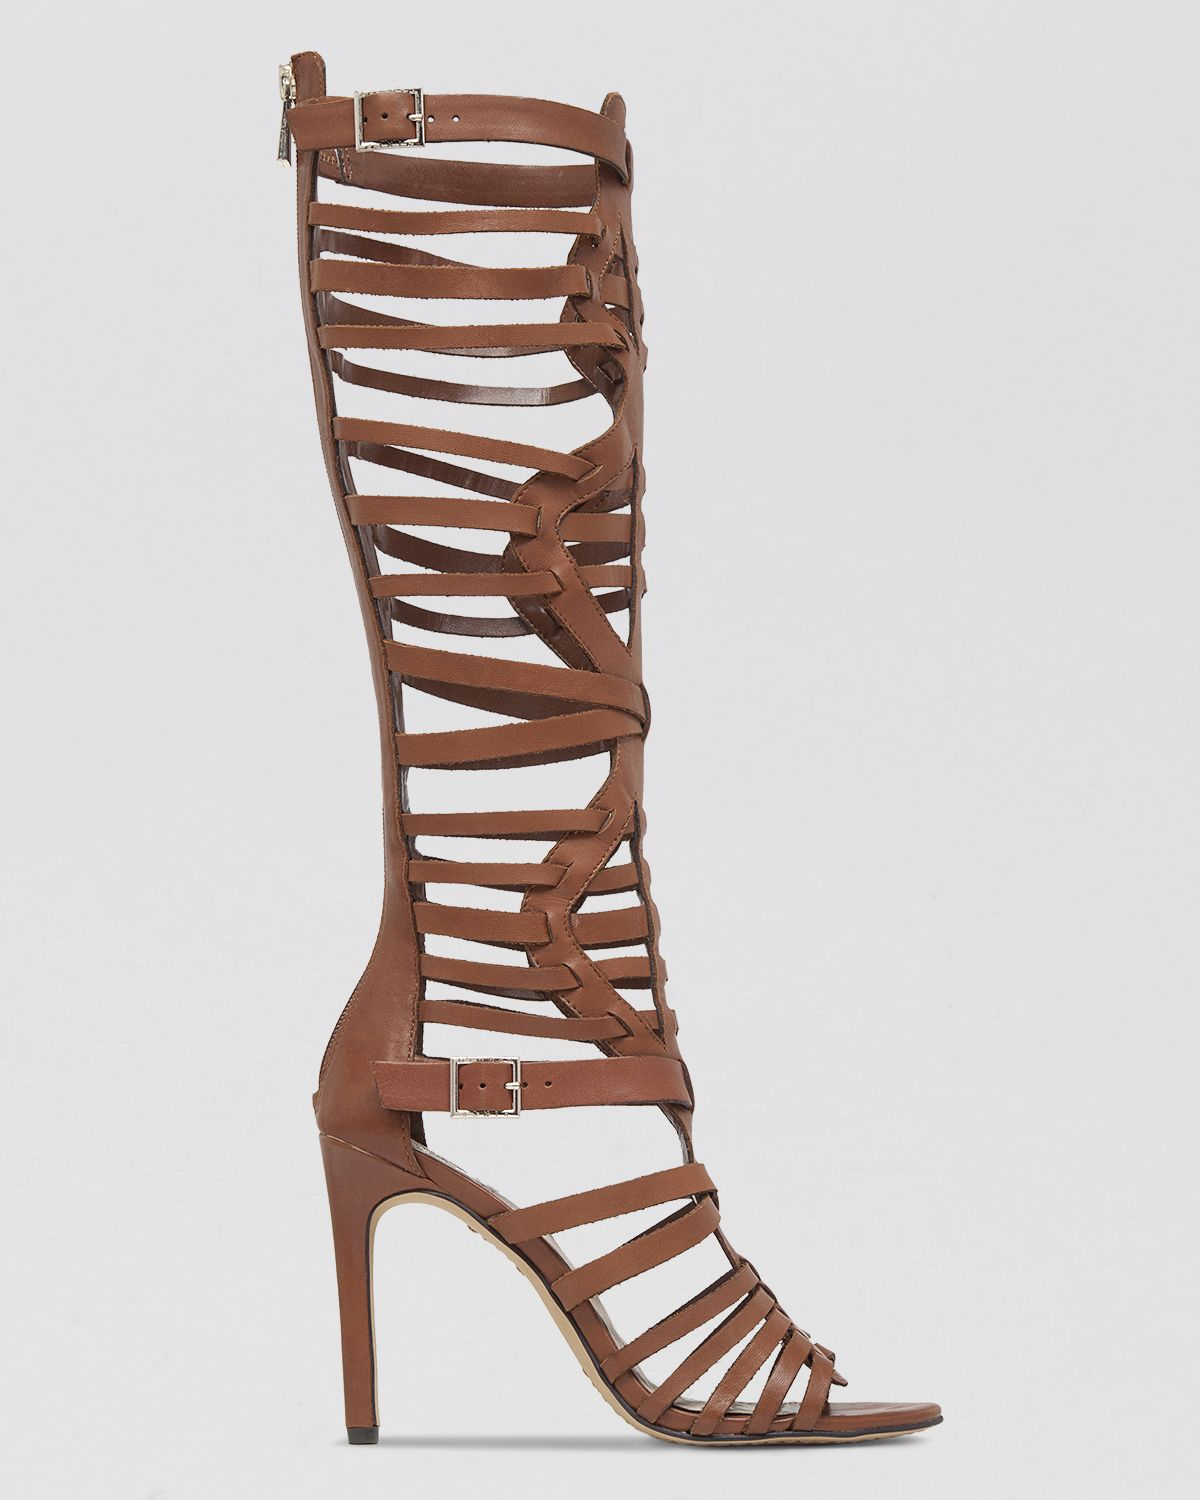 Vince camuto Gladiator Sandals - Kase High Heel in Black | Lyst